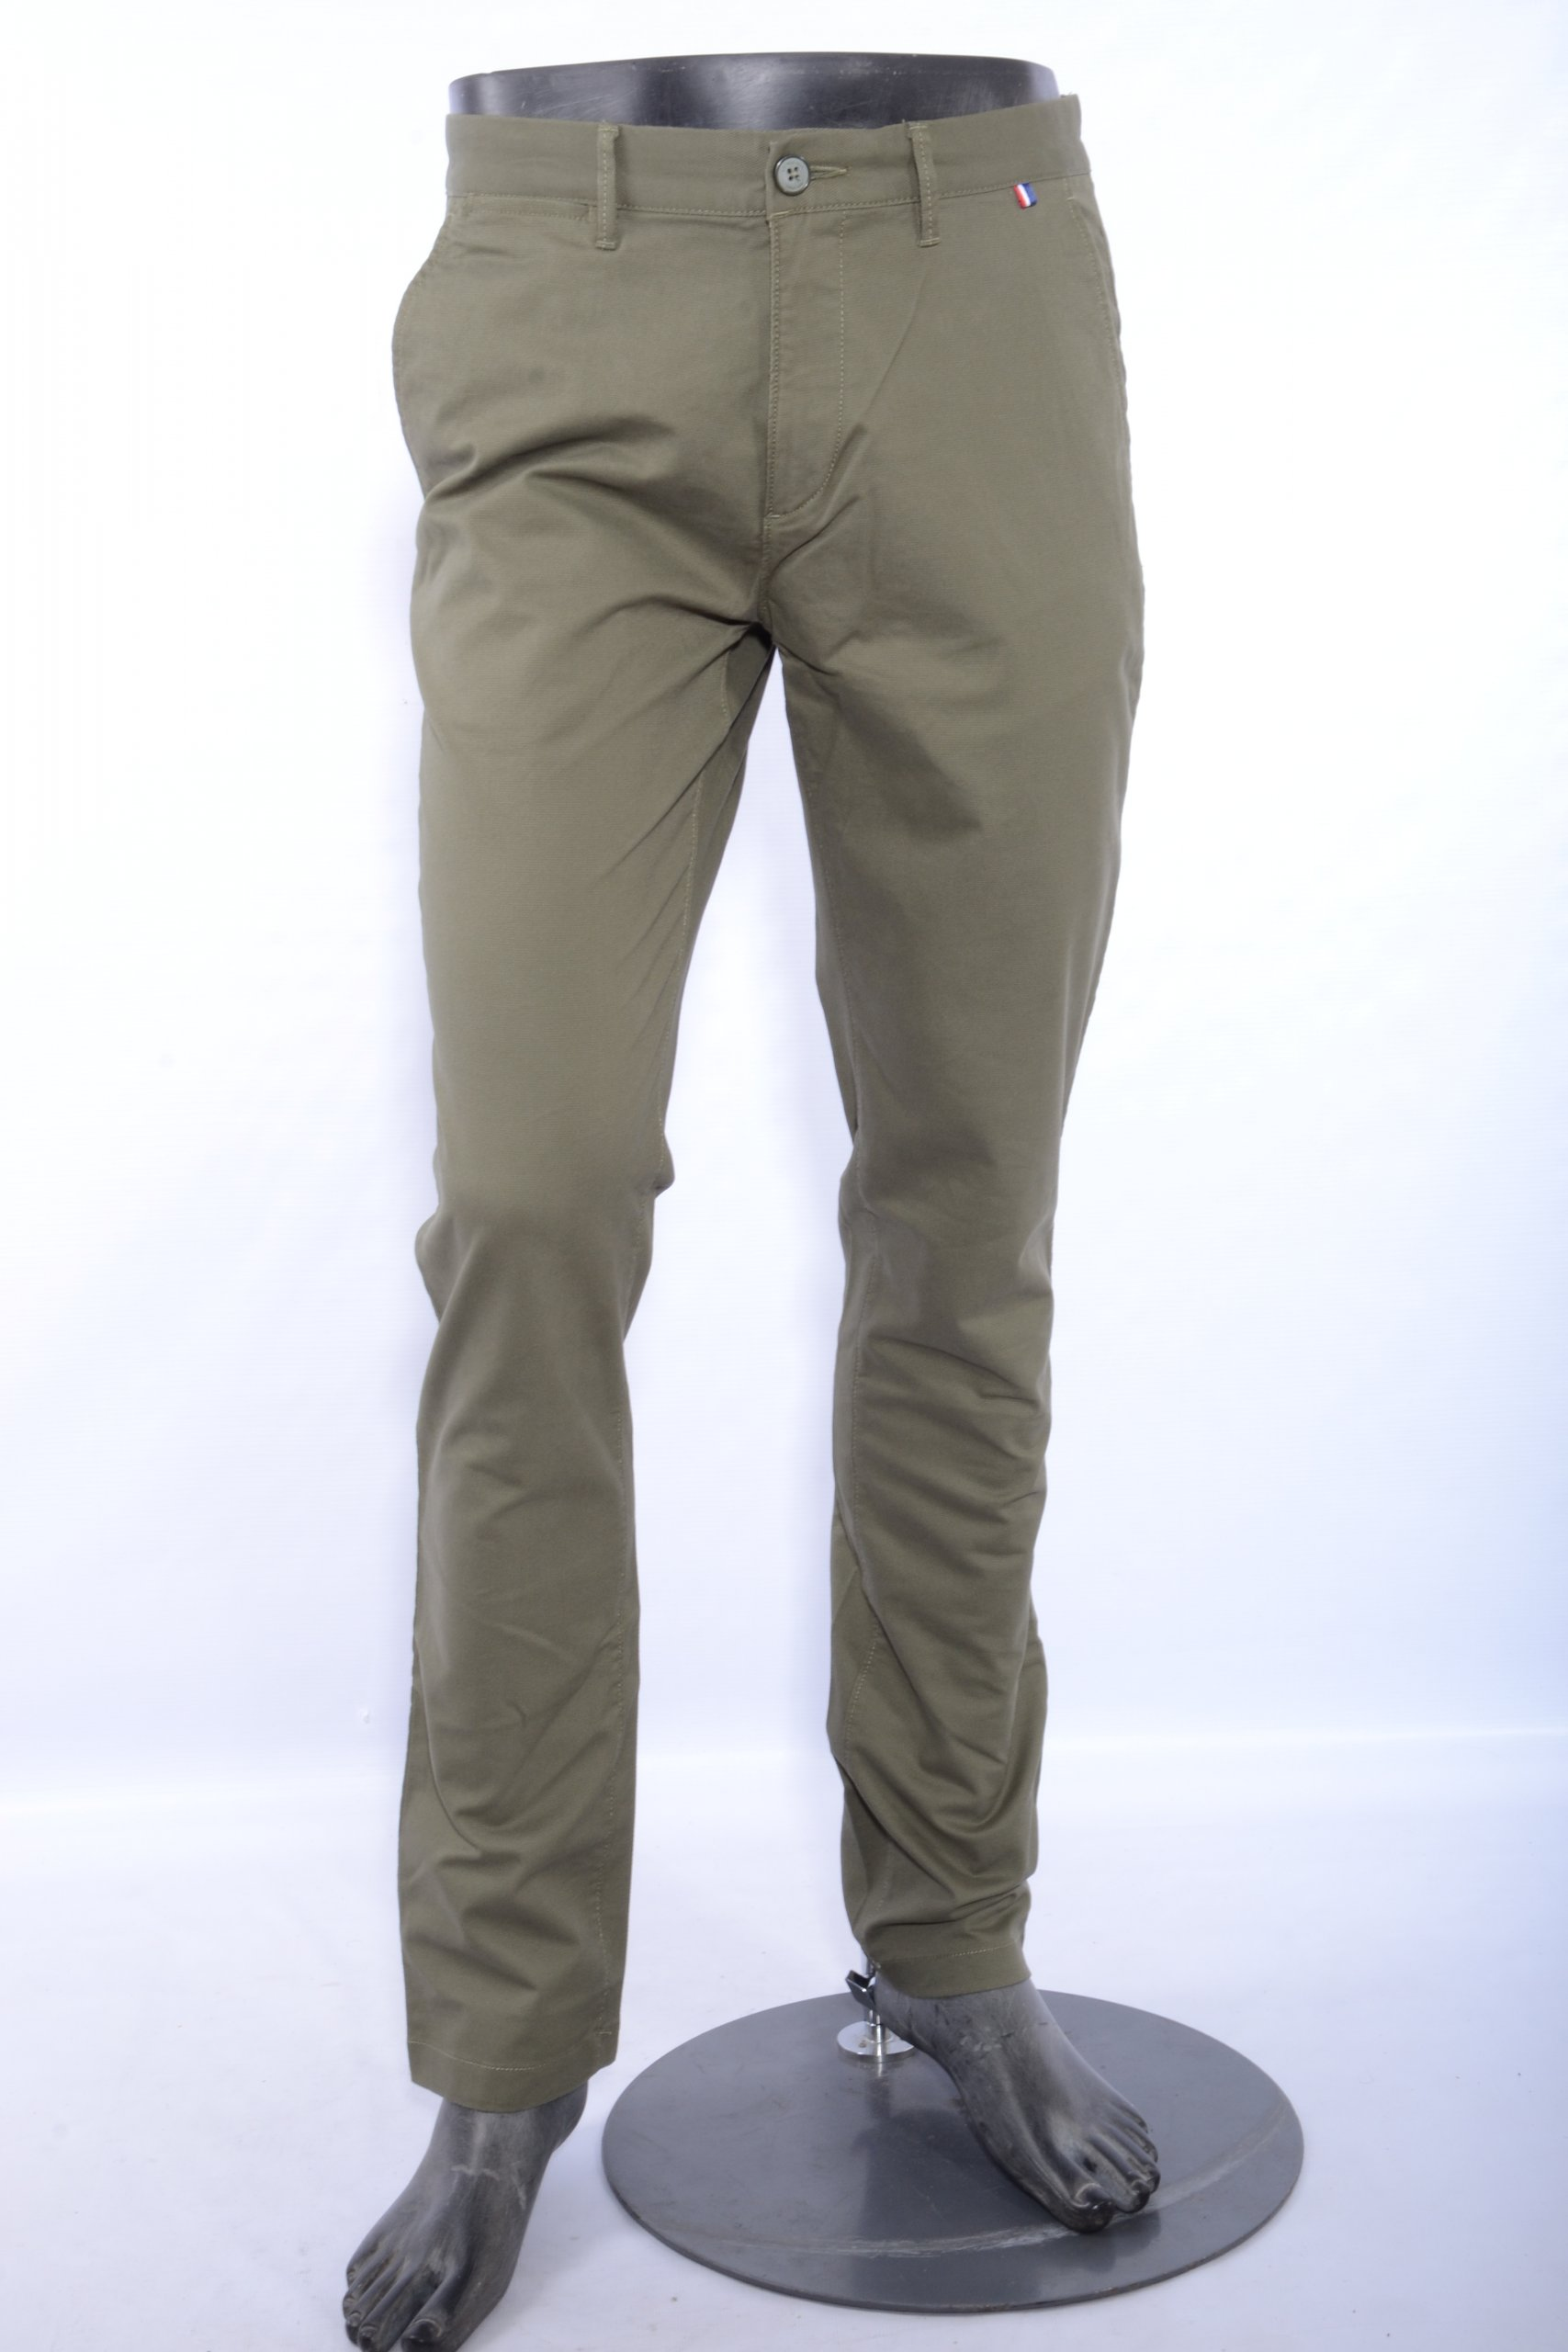 Green Coloured Trouser by Us Polo